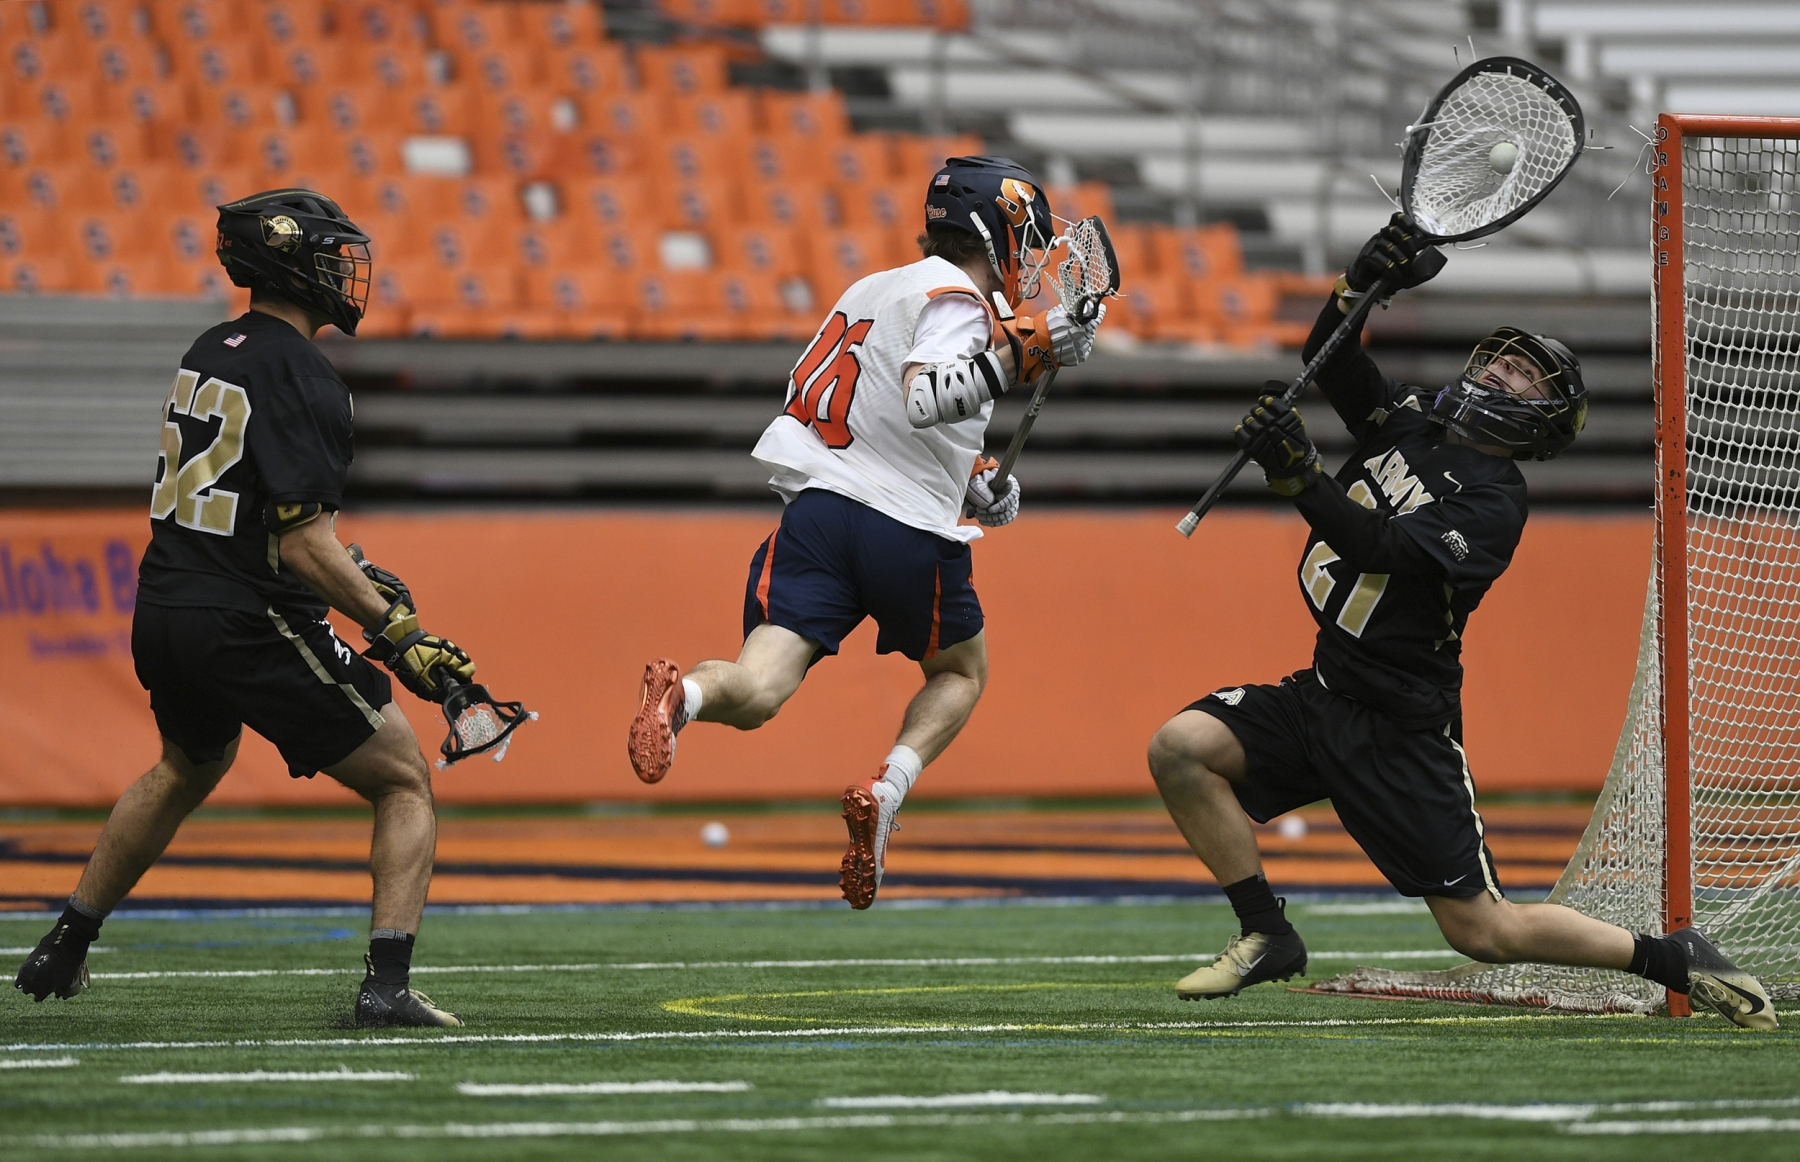 Army goalie Wyatt Schupler saves a shot by Syracuse's Brendan Curry during the game at the Carrier Dome on Feb. 23, 2020.